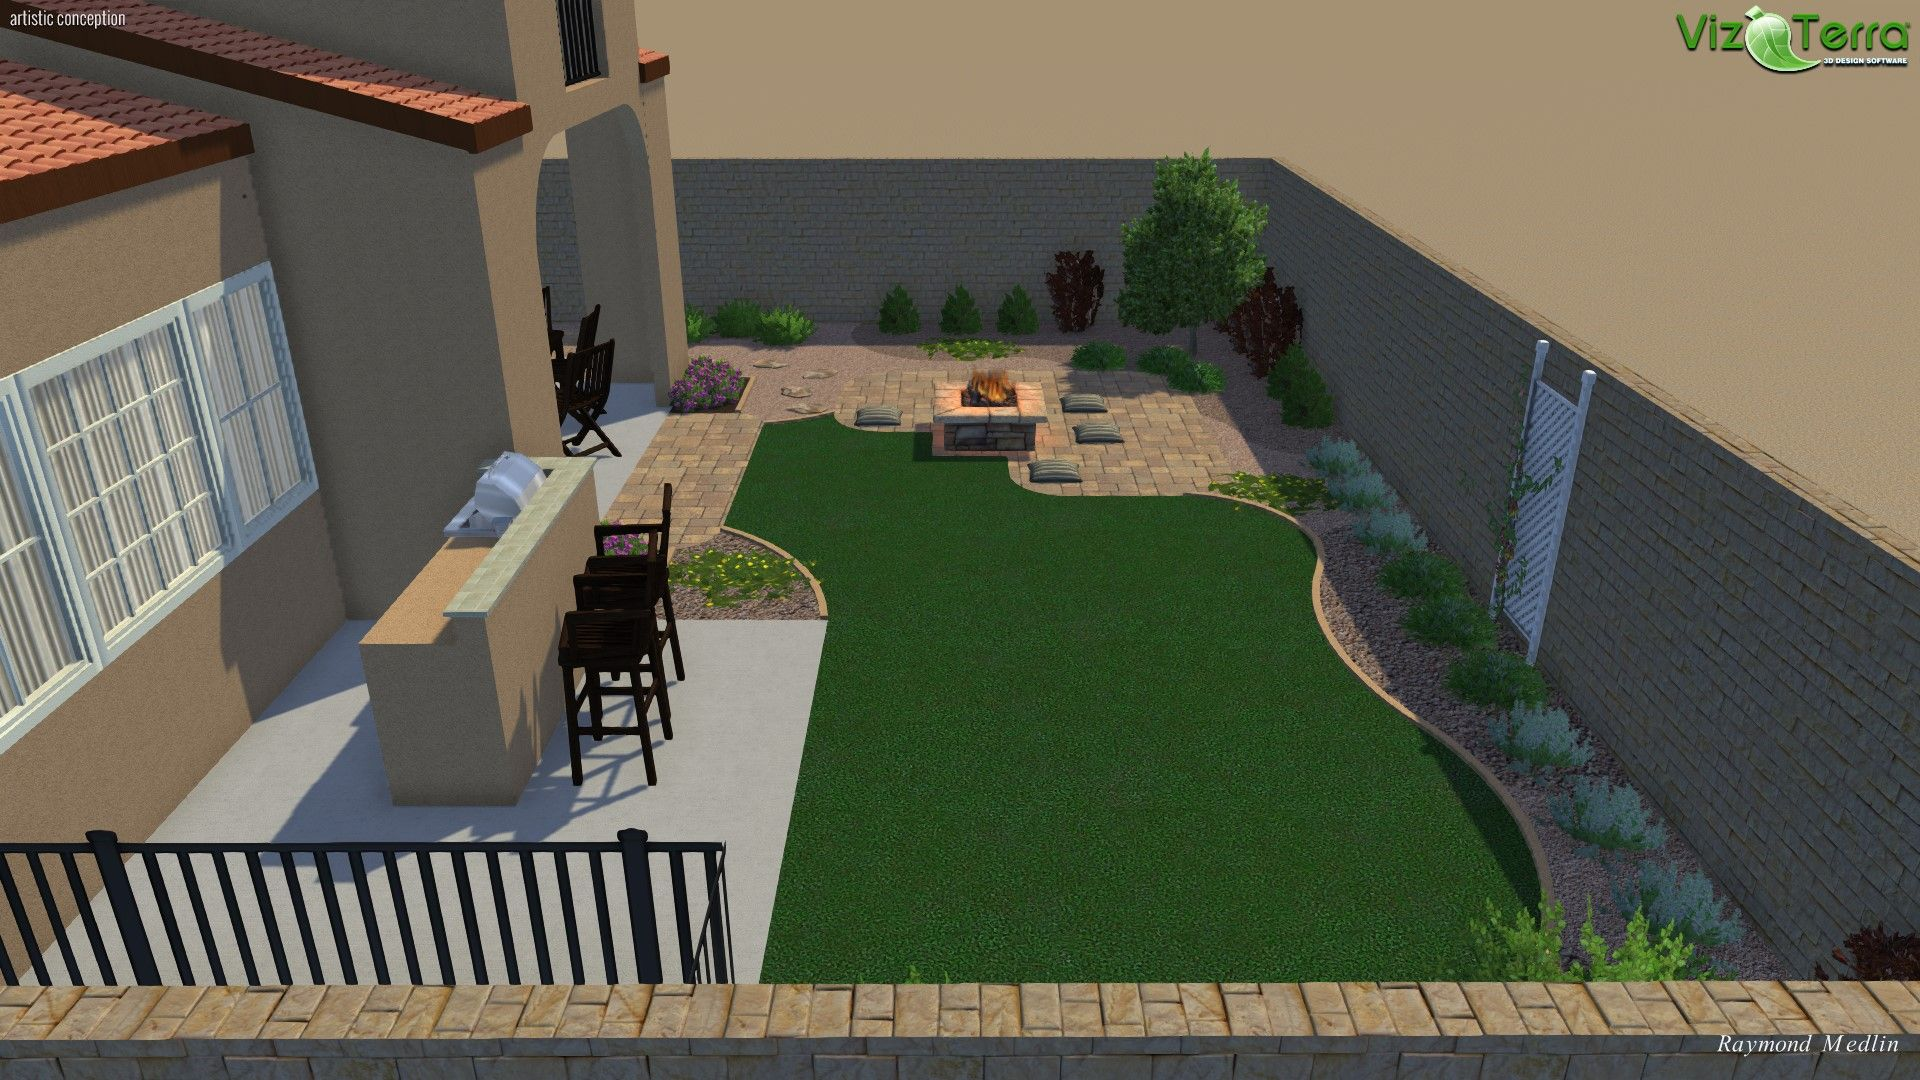 3d Landscape Design Turf Fire Pit Plants And Sierra